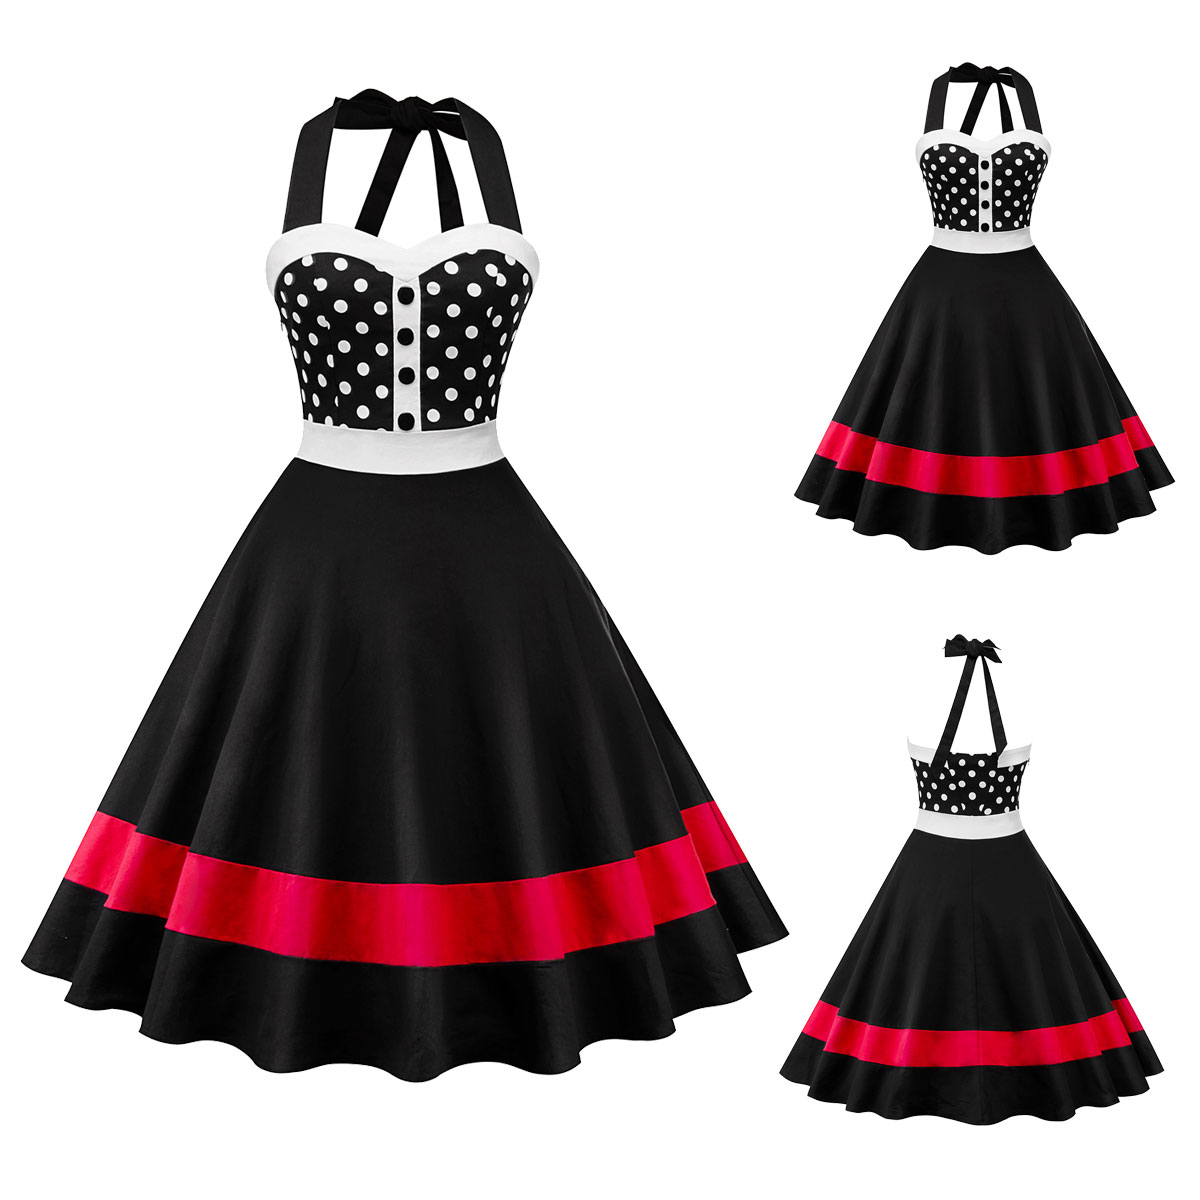 e62e50bb8f1f4 Details about Women Party Rockabilly Polka Dot 50s Swing Vintage Style  Pinup Halter Prom Dress